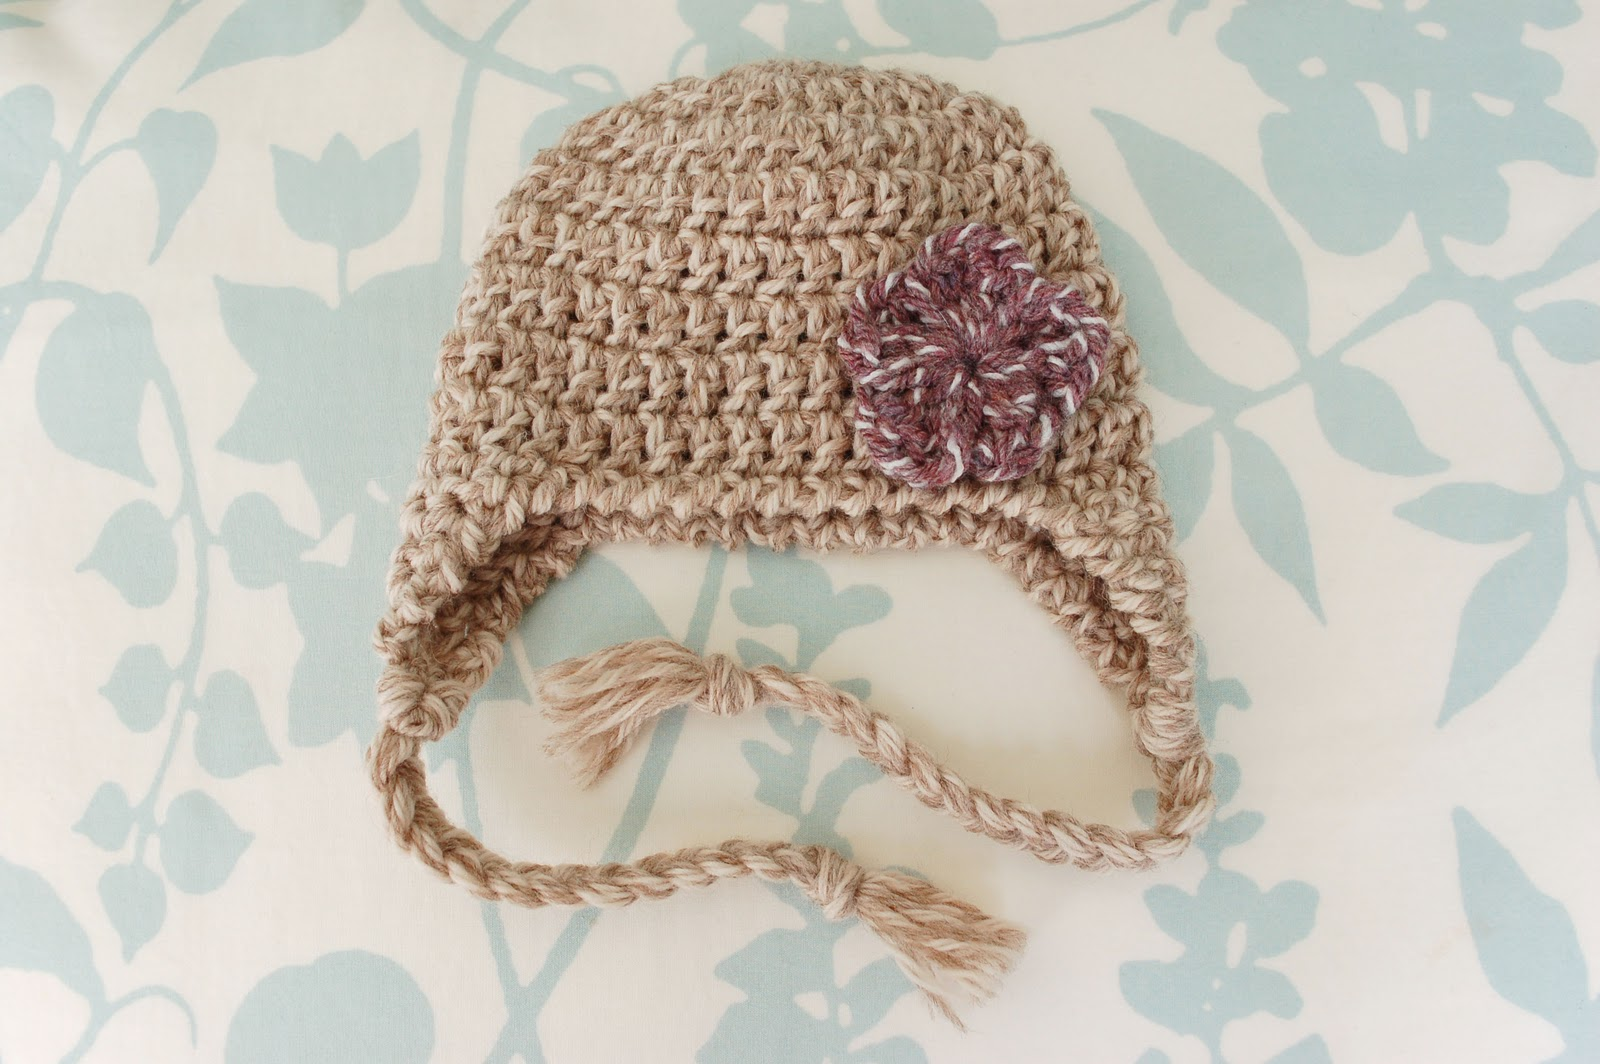 Alli crafts free pattern earflap hat newborn old version free pattern earflap hat newborn old version bankloansurffo Image collections